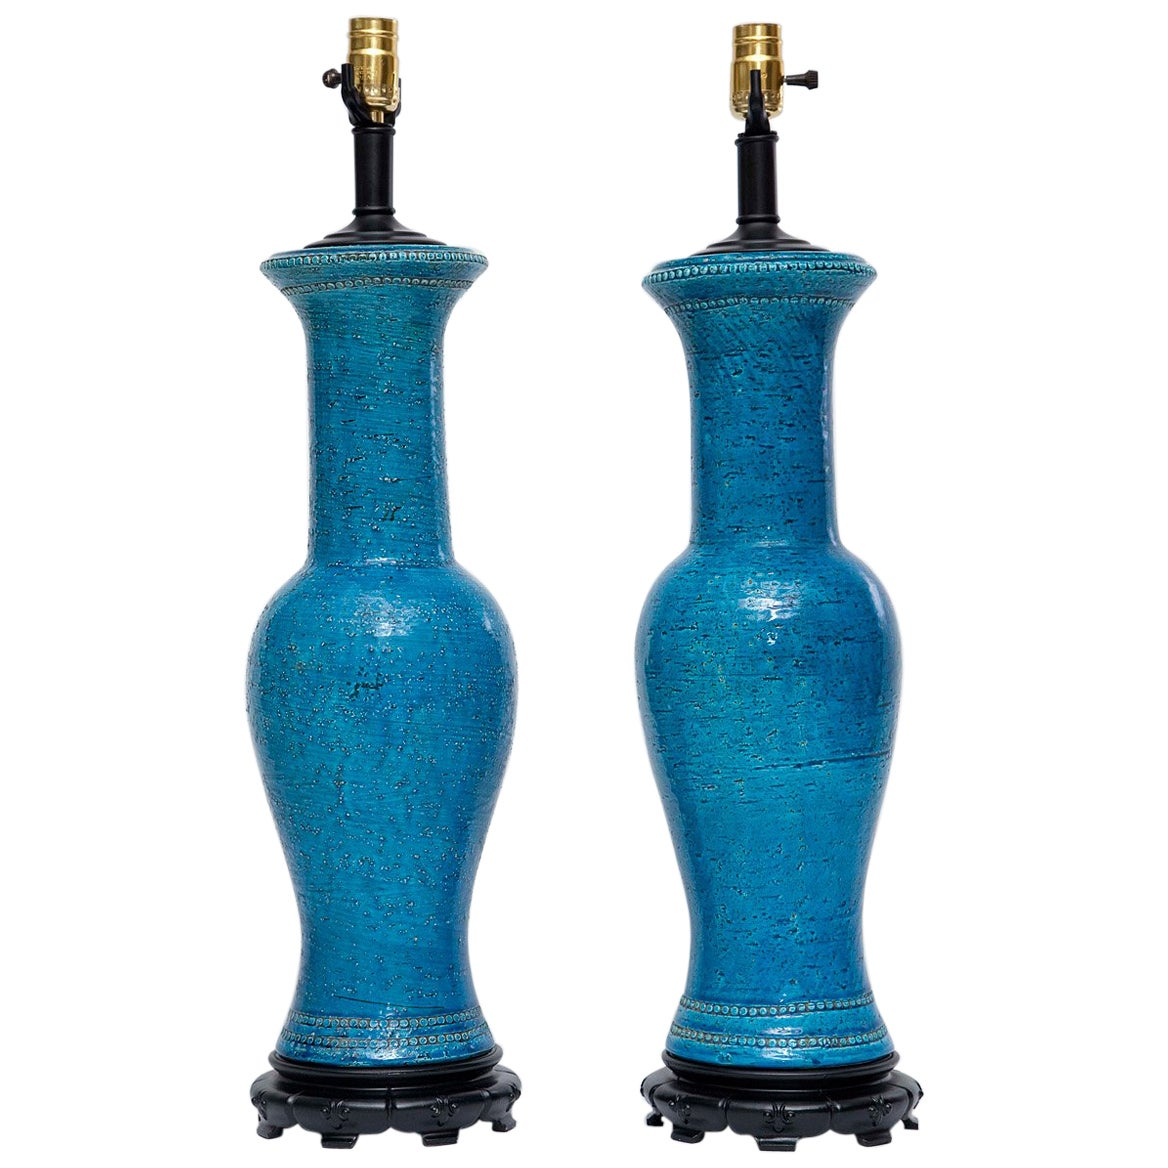 Pair of Tall Bitossi Lamps by Aldo Londi